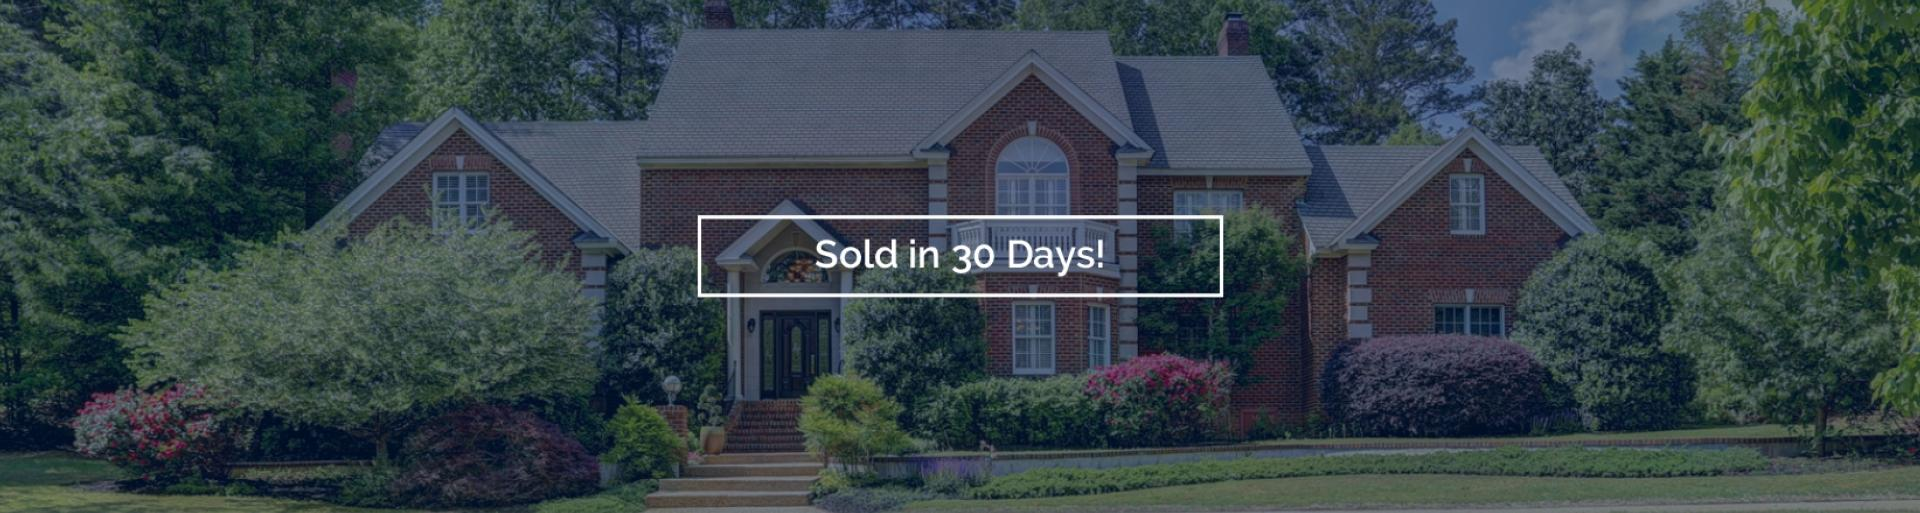 Sold in 30 Days!